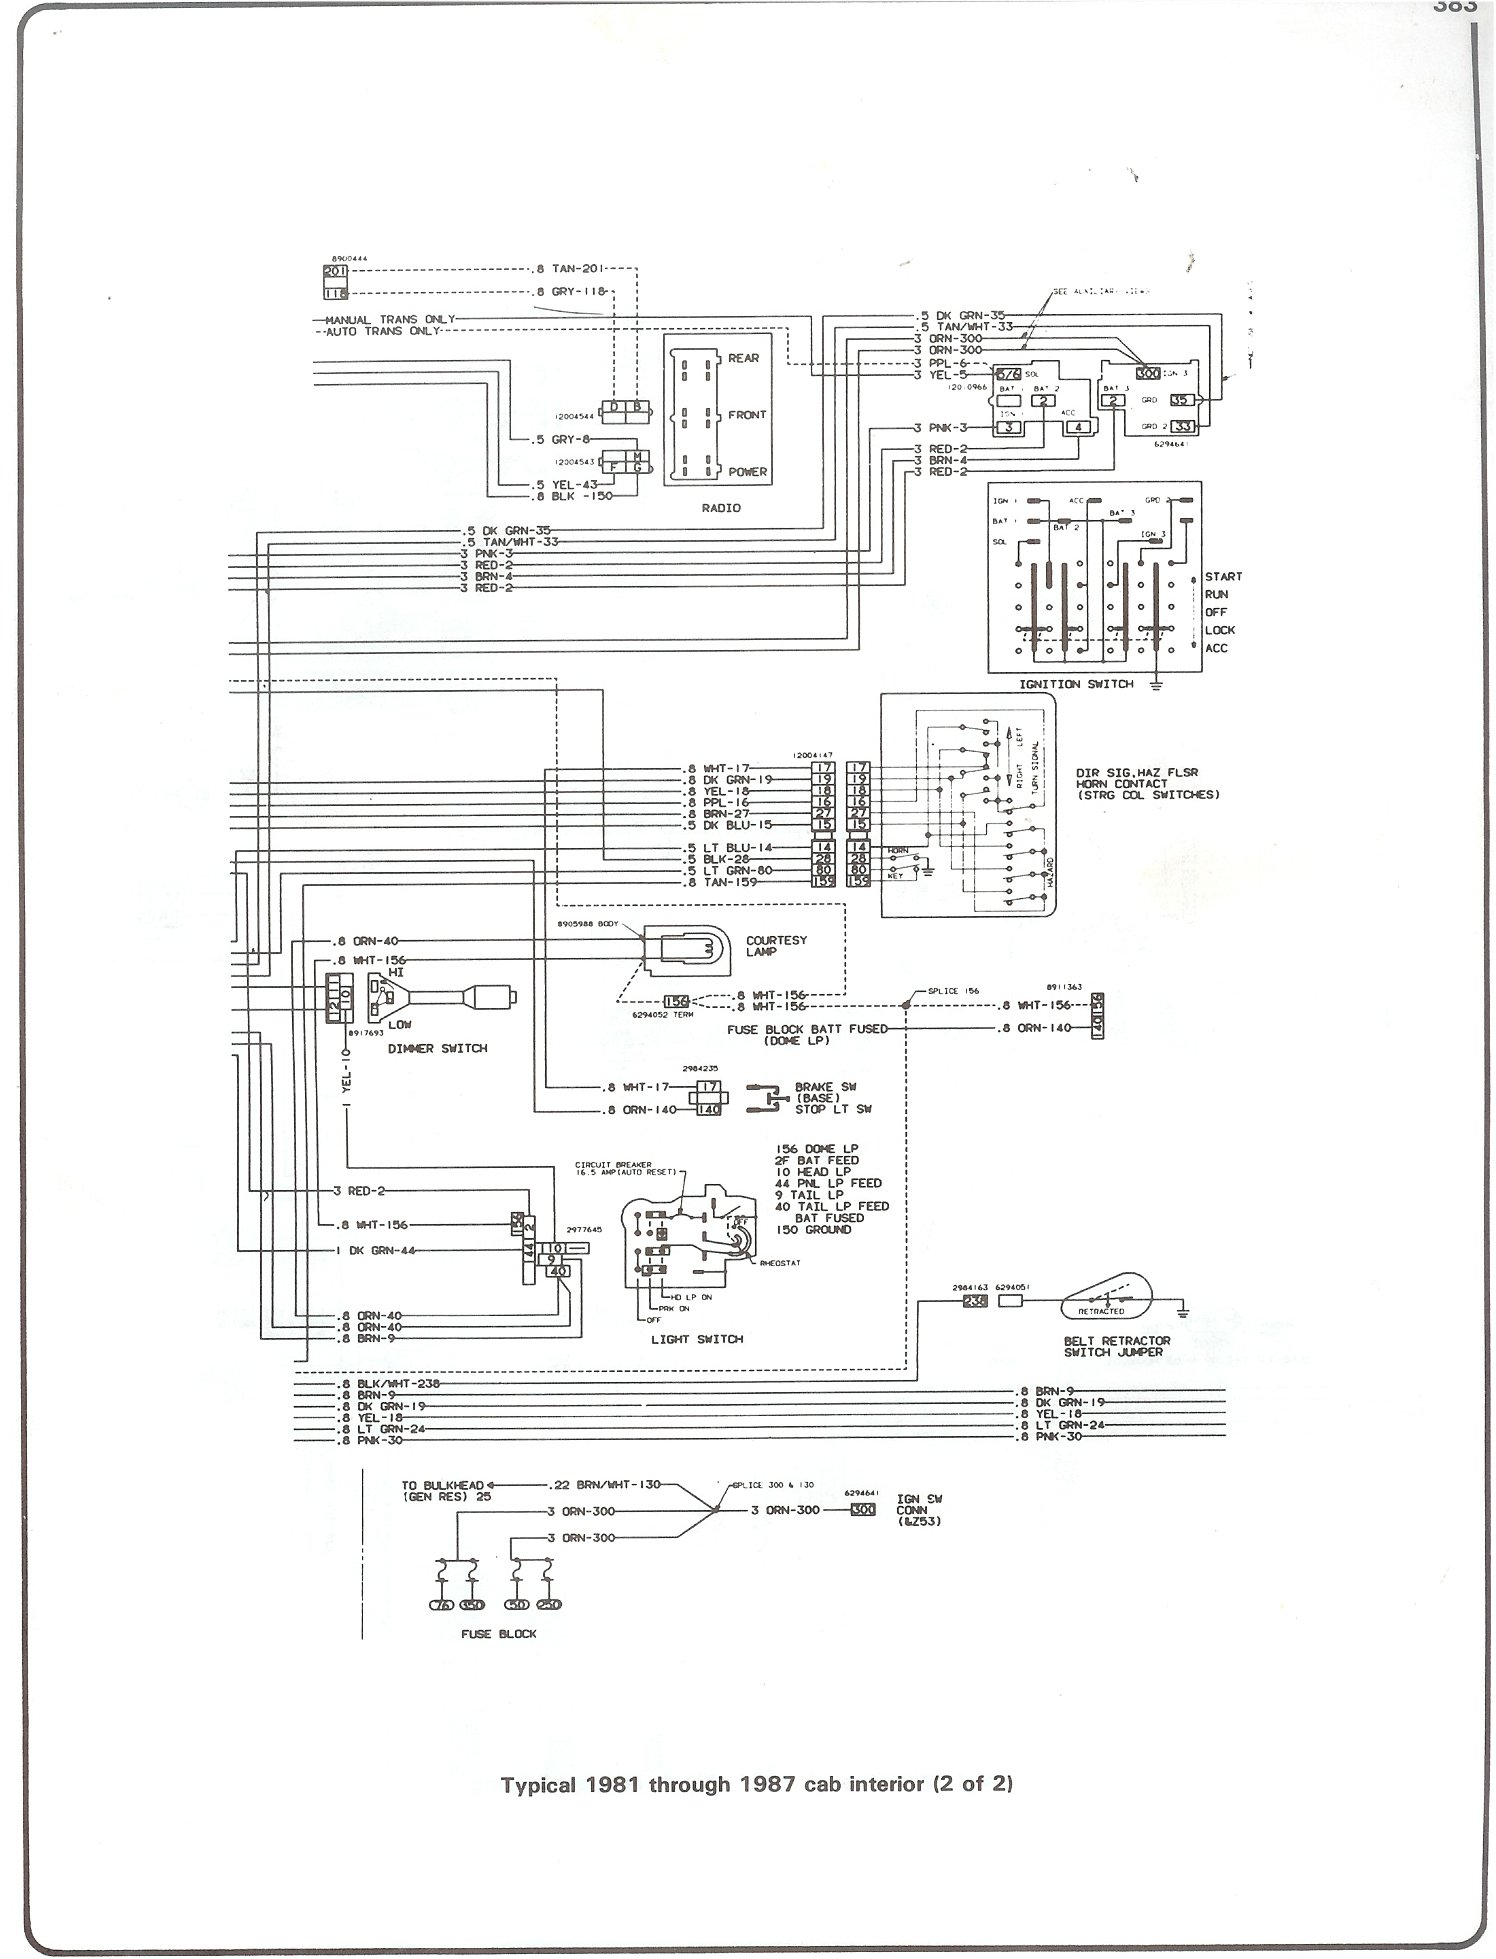 81 87_cab_inter_pg2 complete 73 87 wiring diagrams Chevy Engine Wiring Harness at mifinder.co